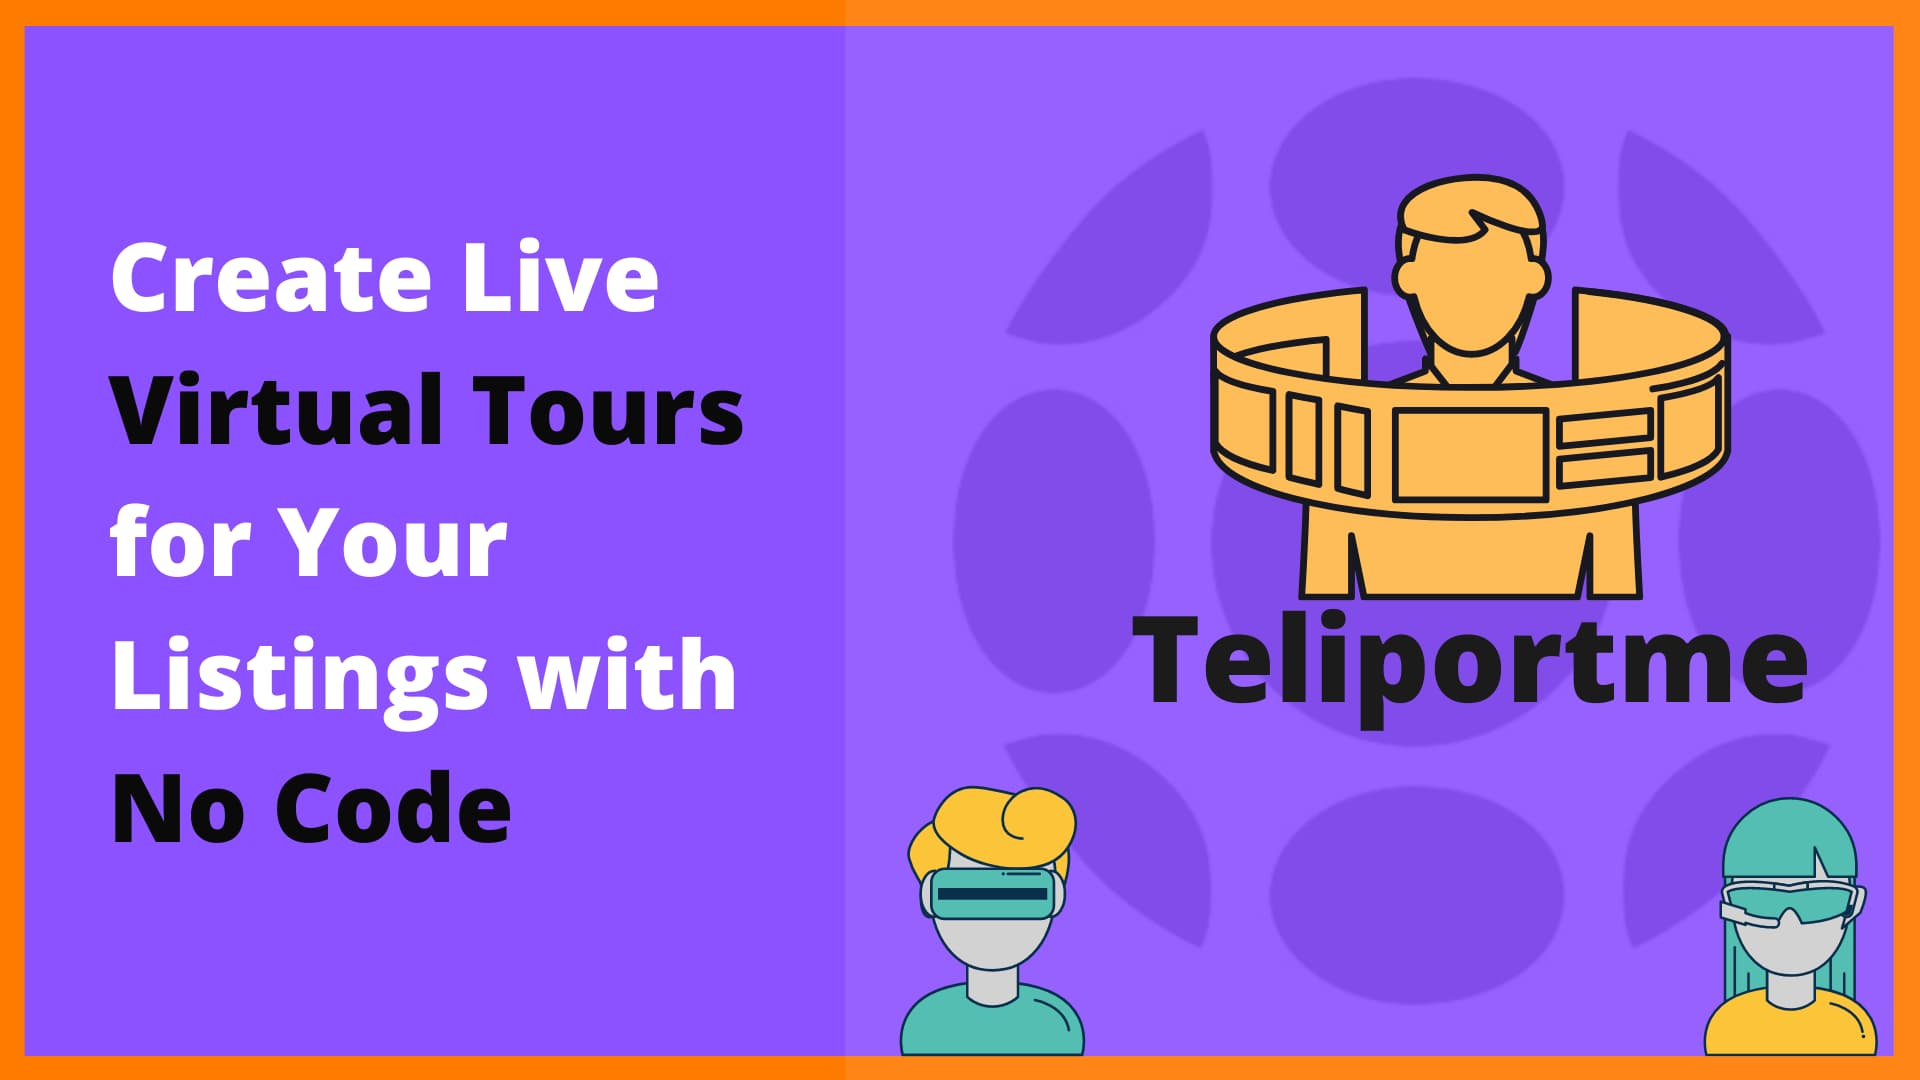 Teliportme - Simple and Powerful Platform to Create Virtual Tours for Every Budget